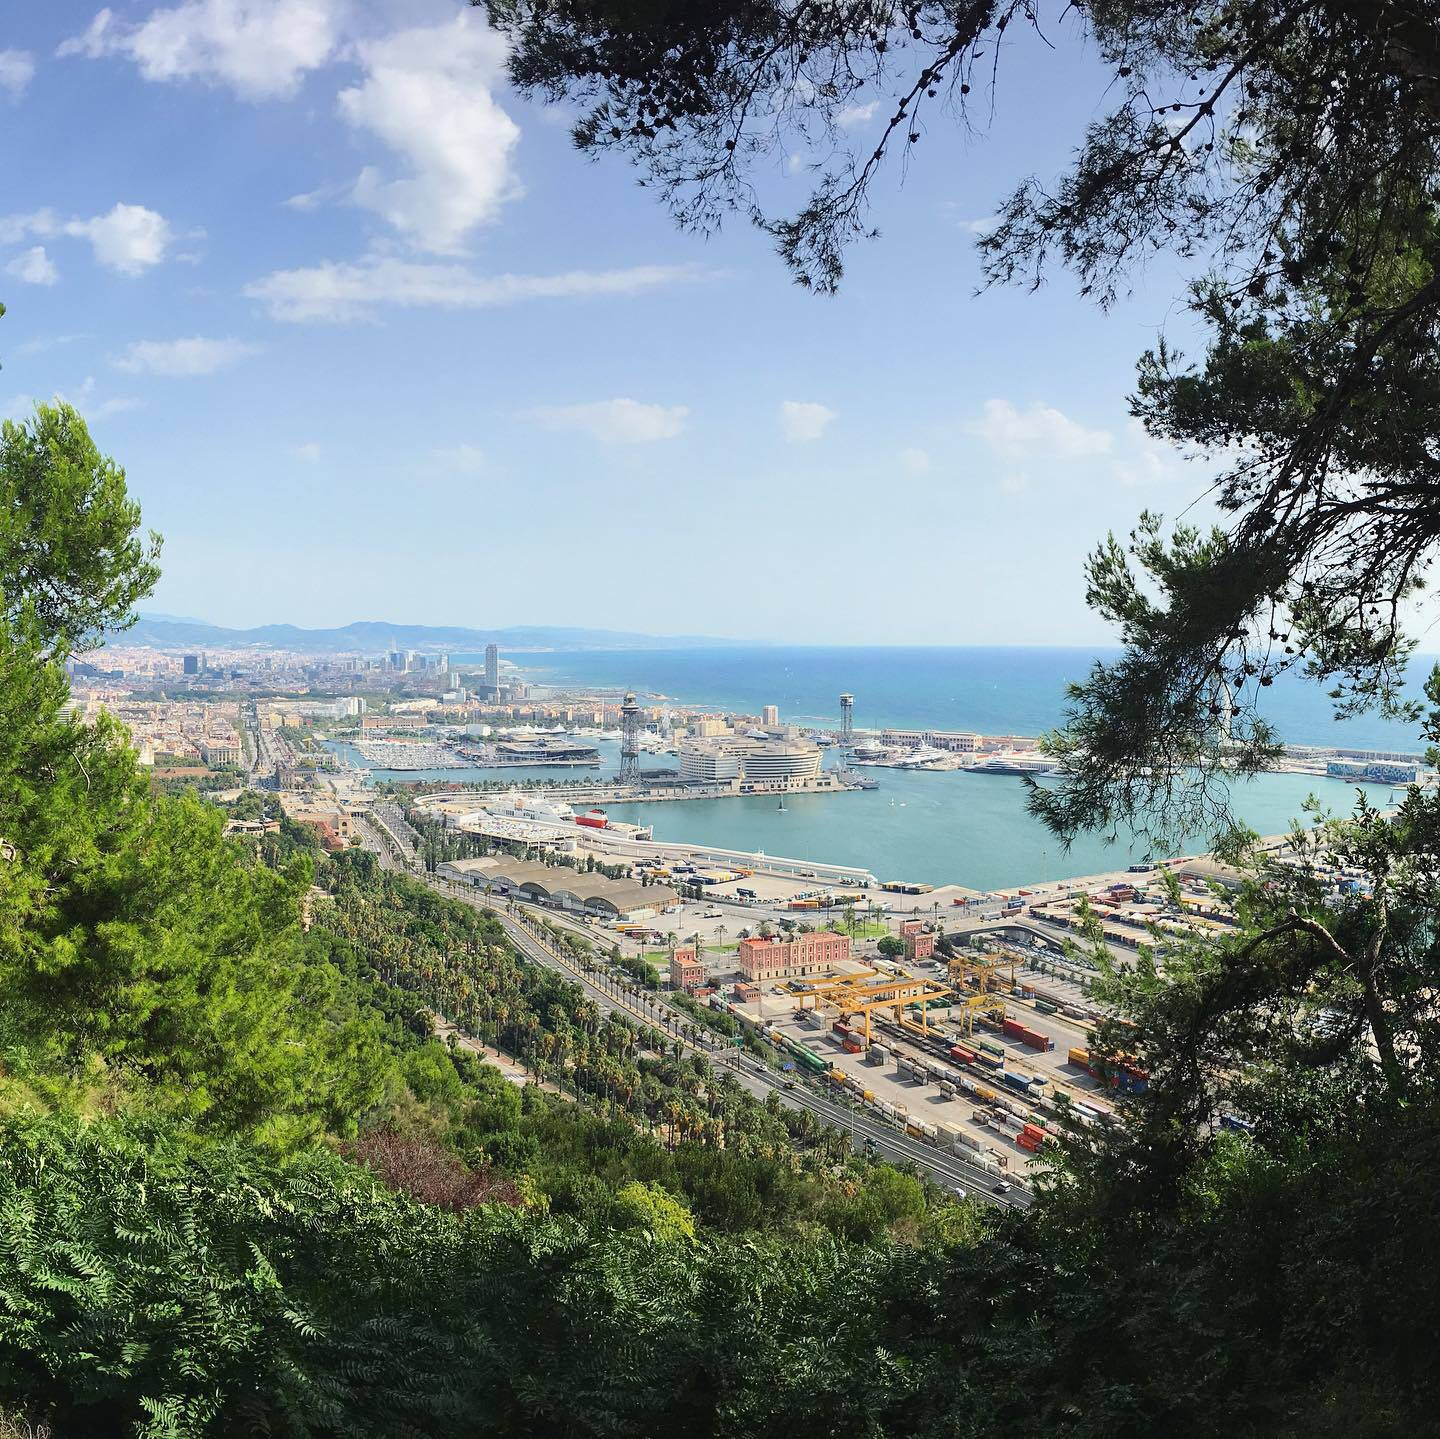 The port of Barcelona from Montjuïc